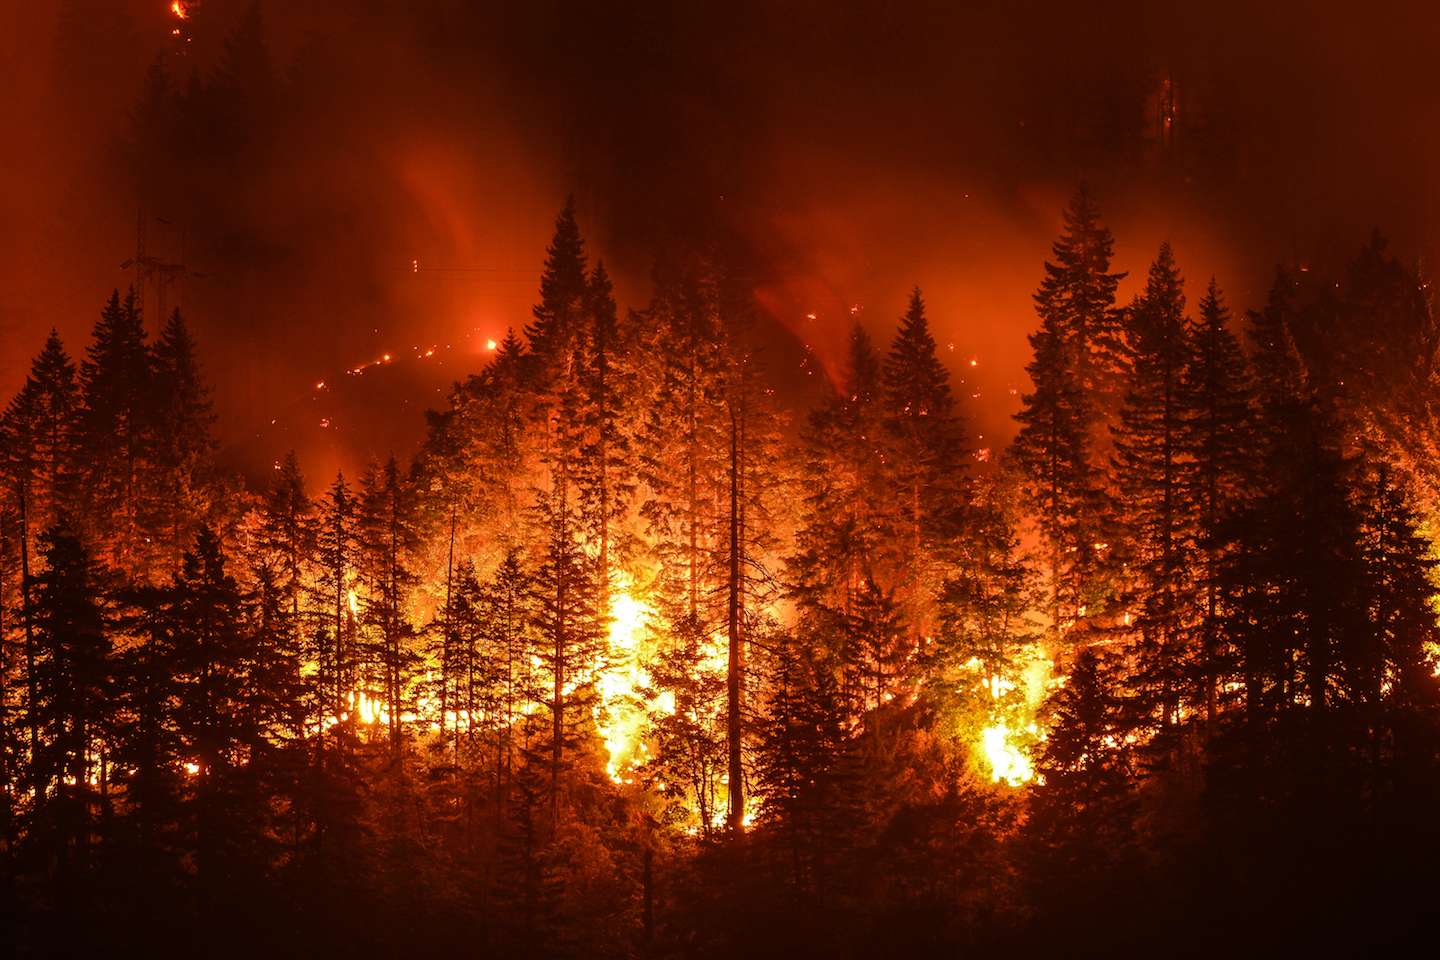 NASA scientists have found that highly localized winds often play an even larger role in accelerating fires.